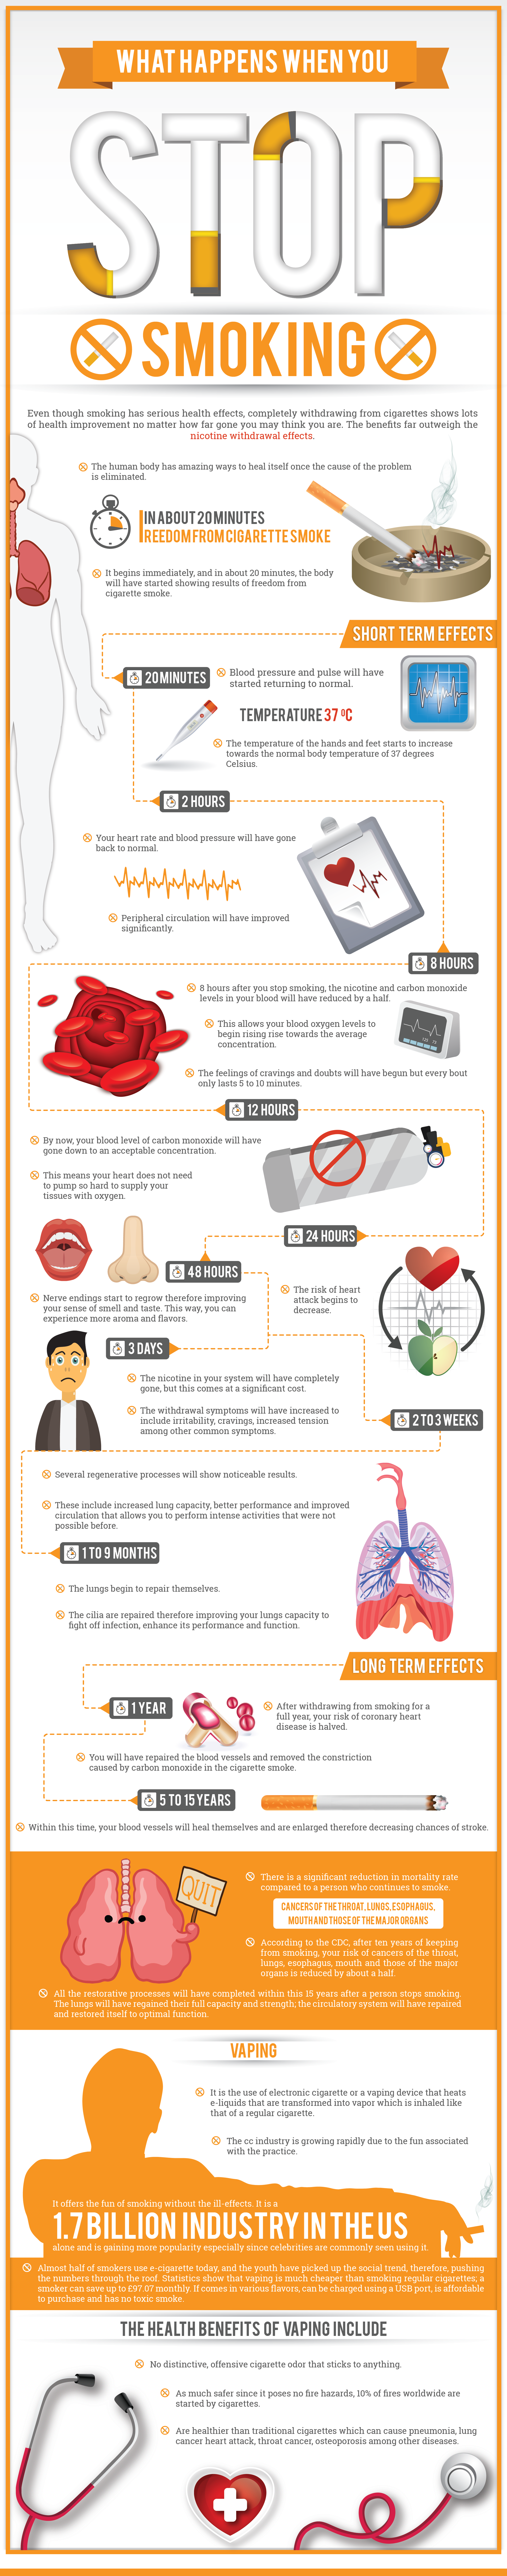 Stop Smoking infographic picture